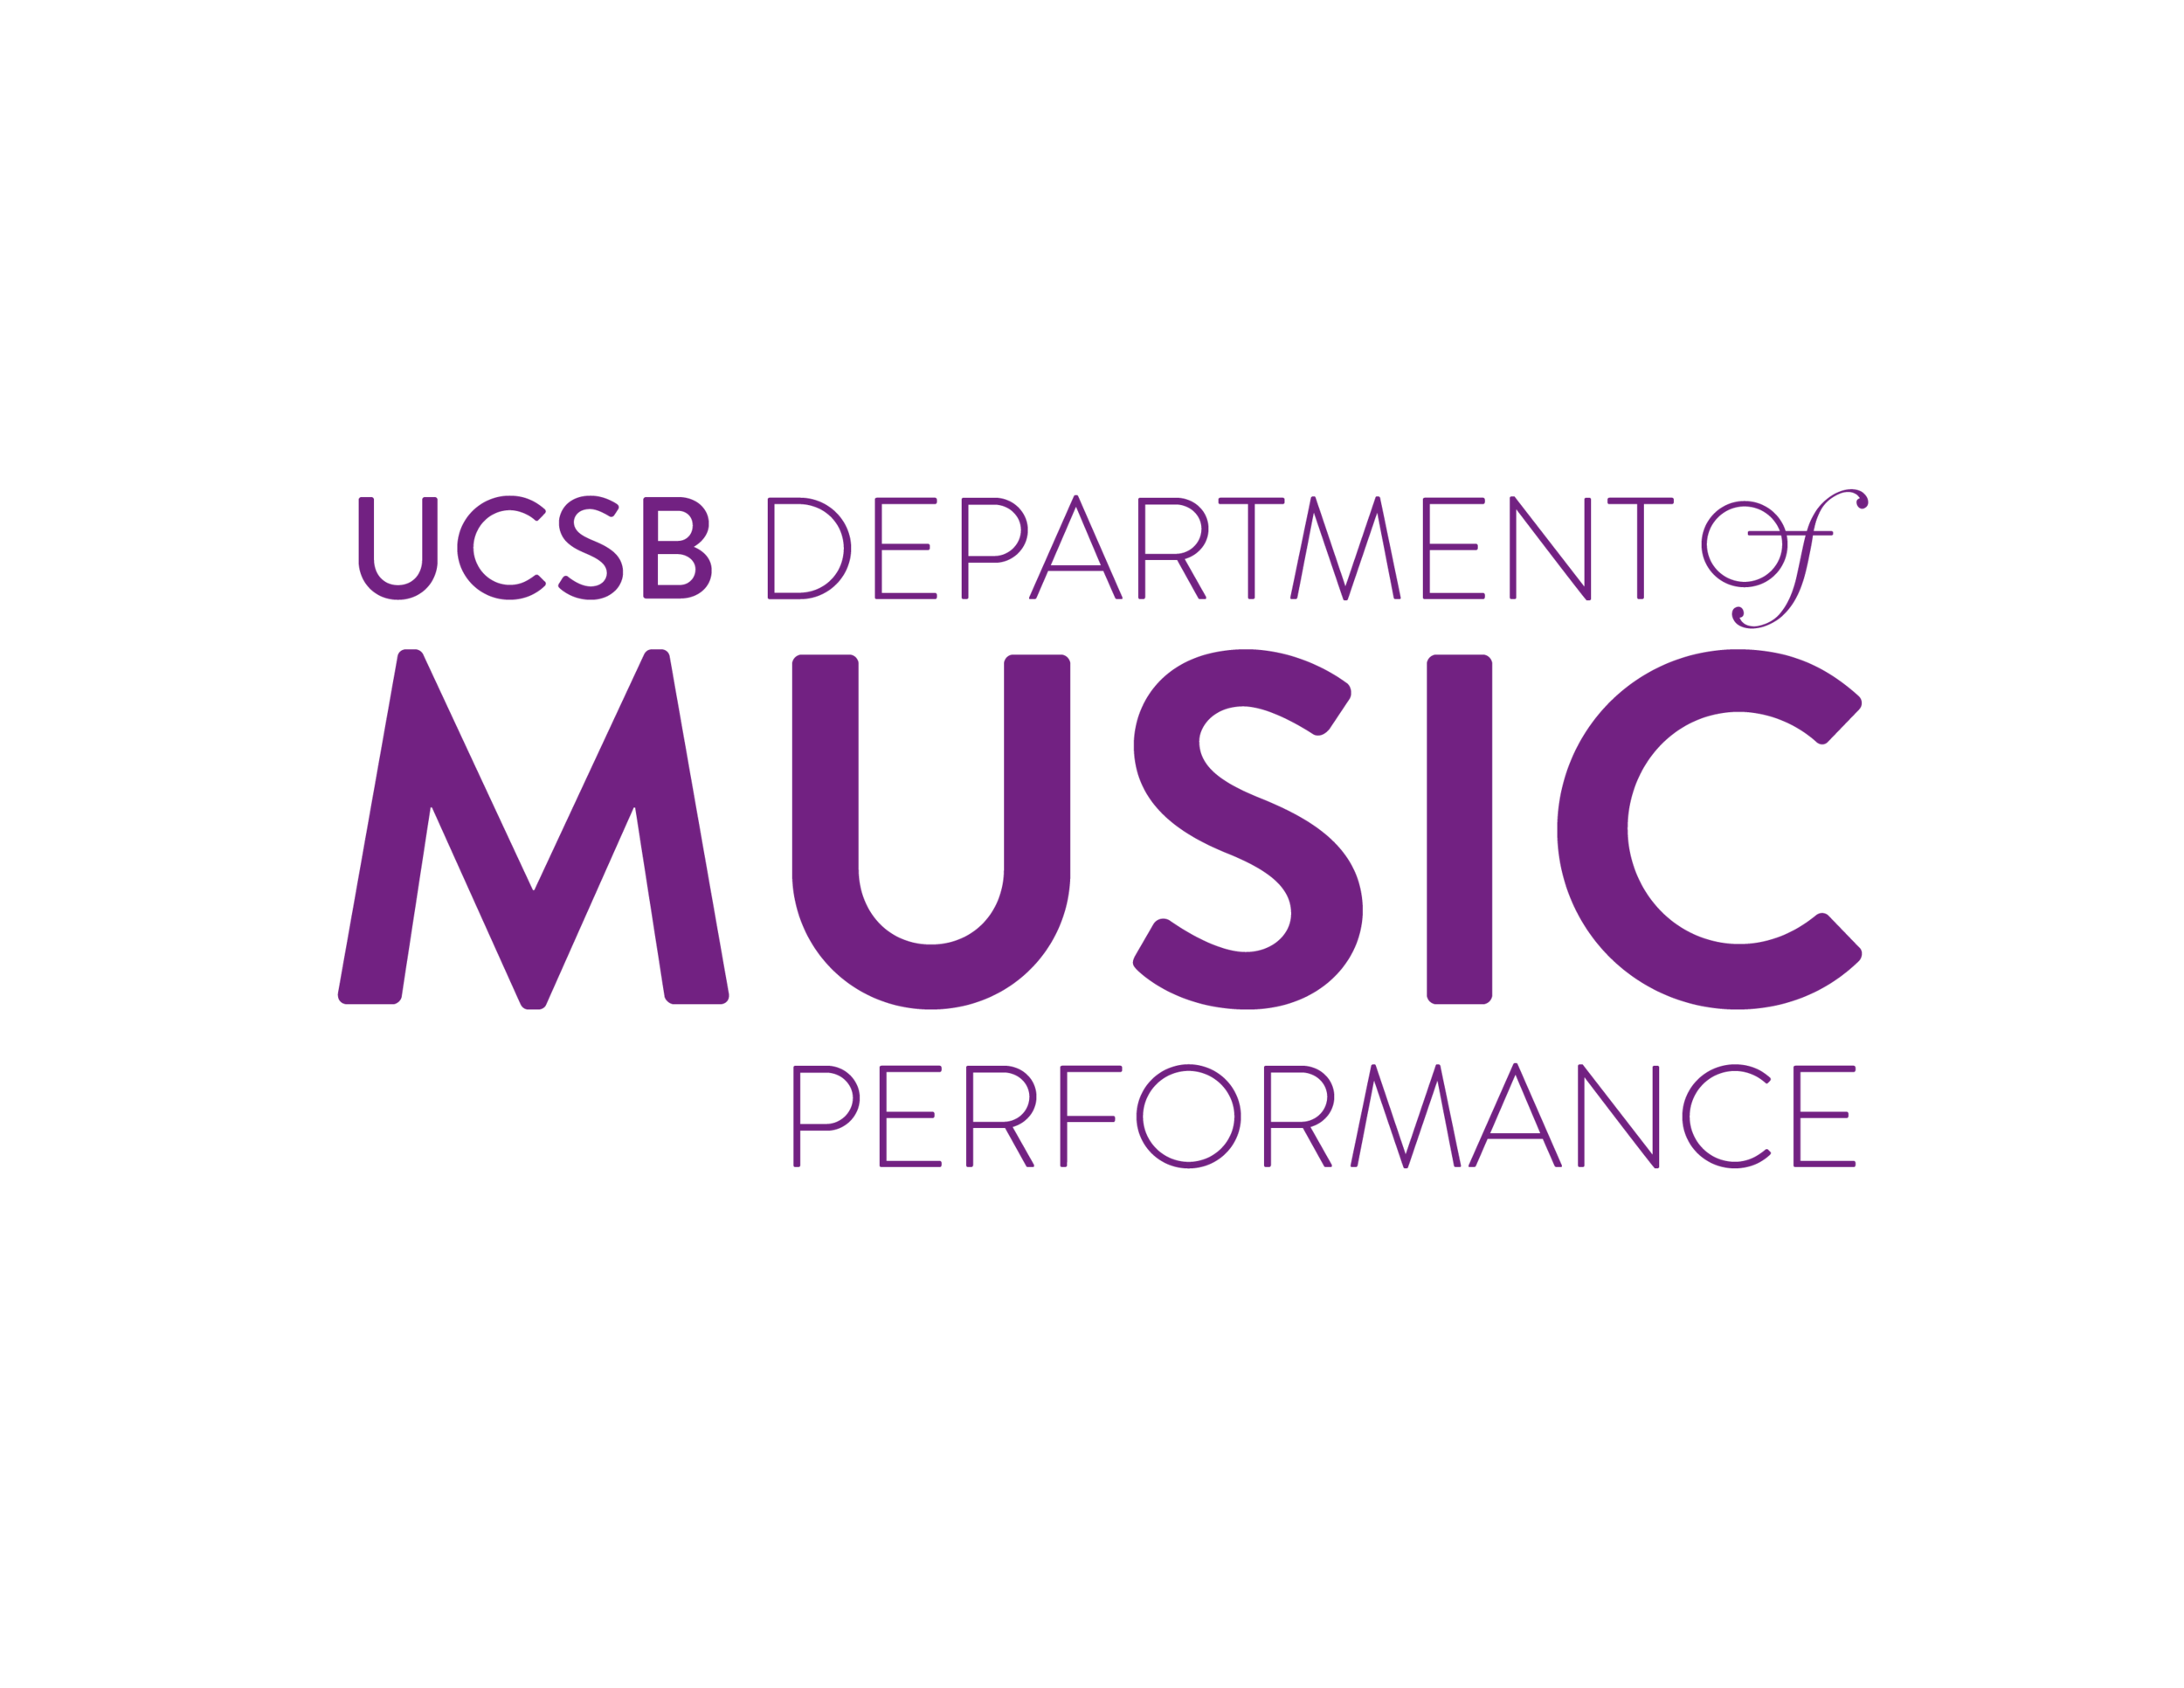 ucsb guidelines new logo and font use FINAL-11.png